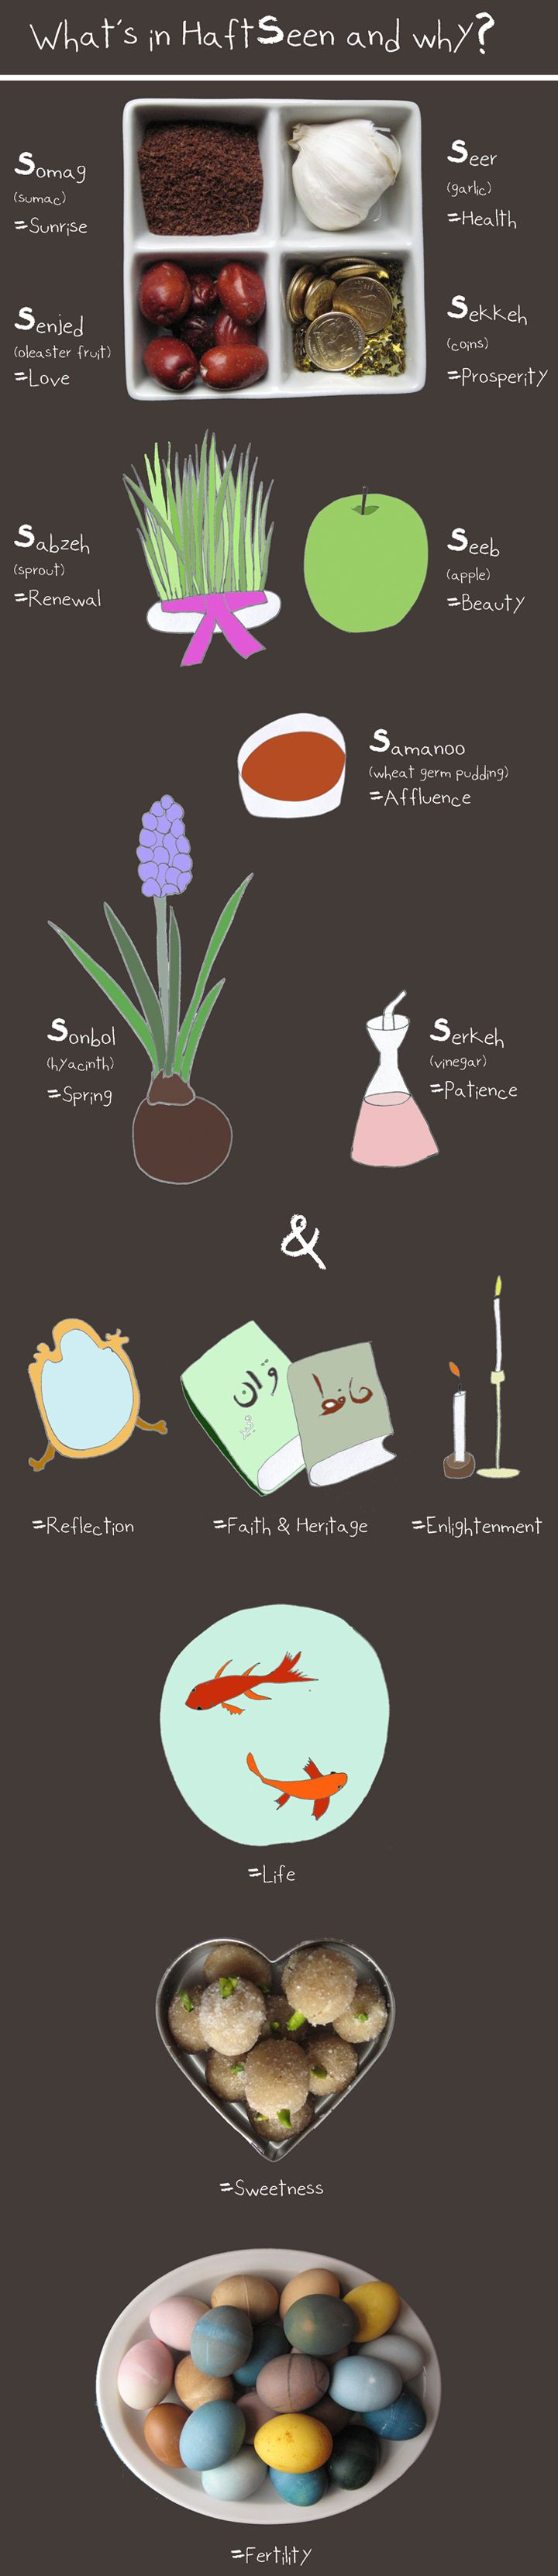 Illustrated Guide to HaftSeen - Norooz